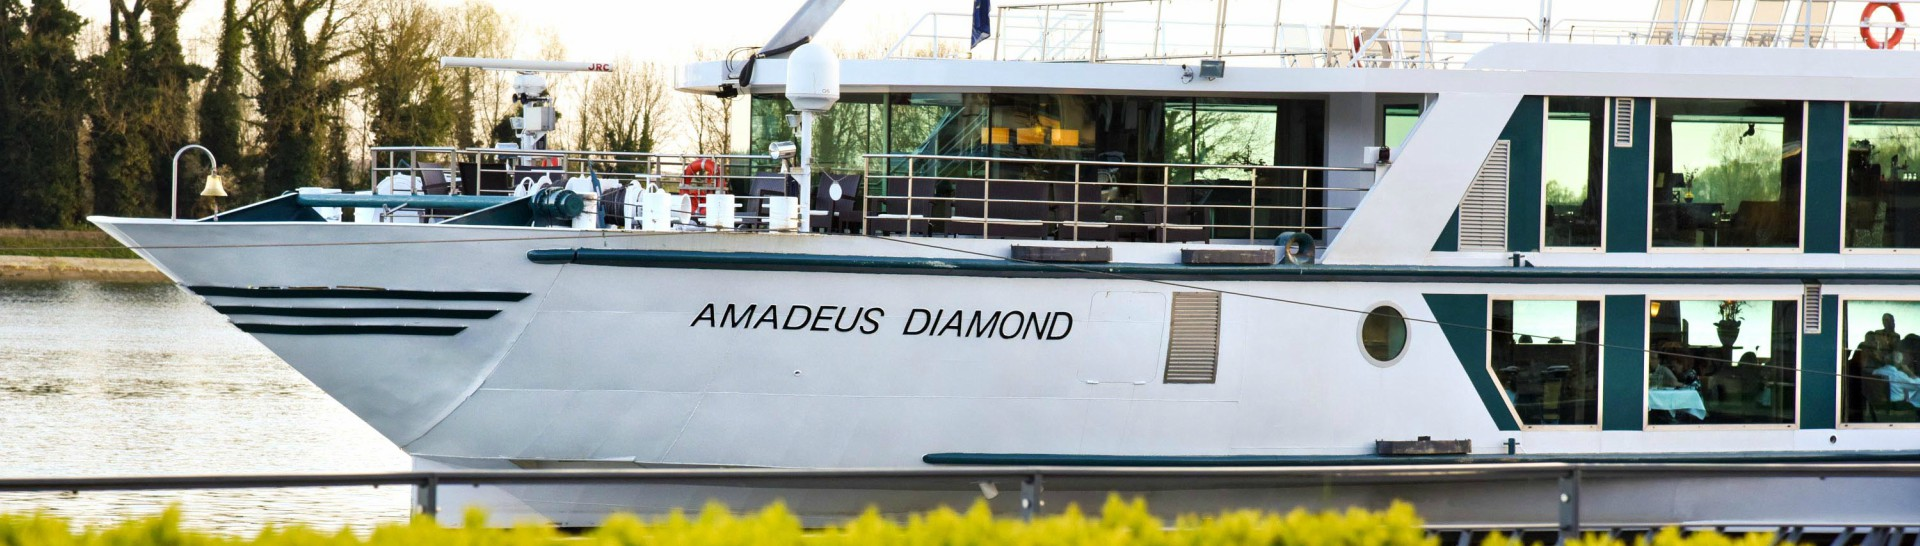 Amadeus Diamond ship